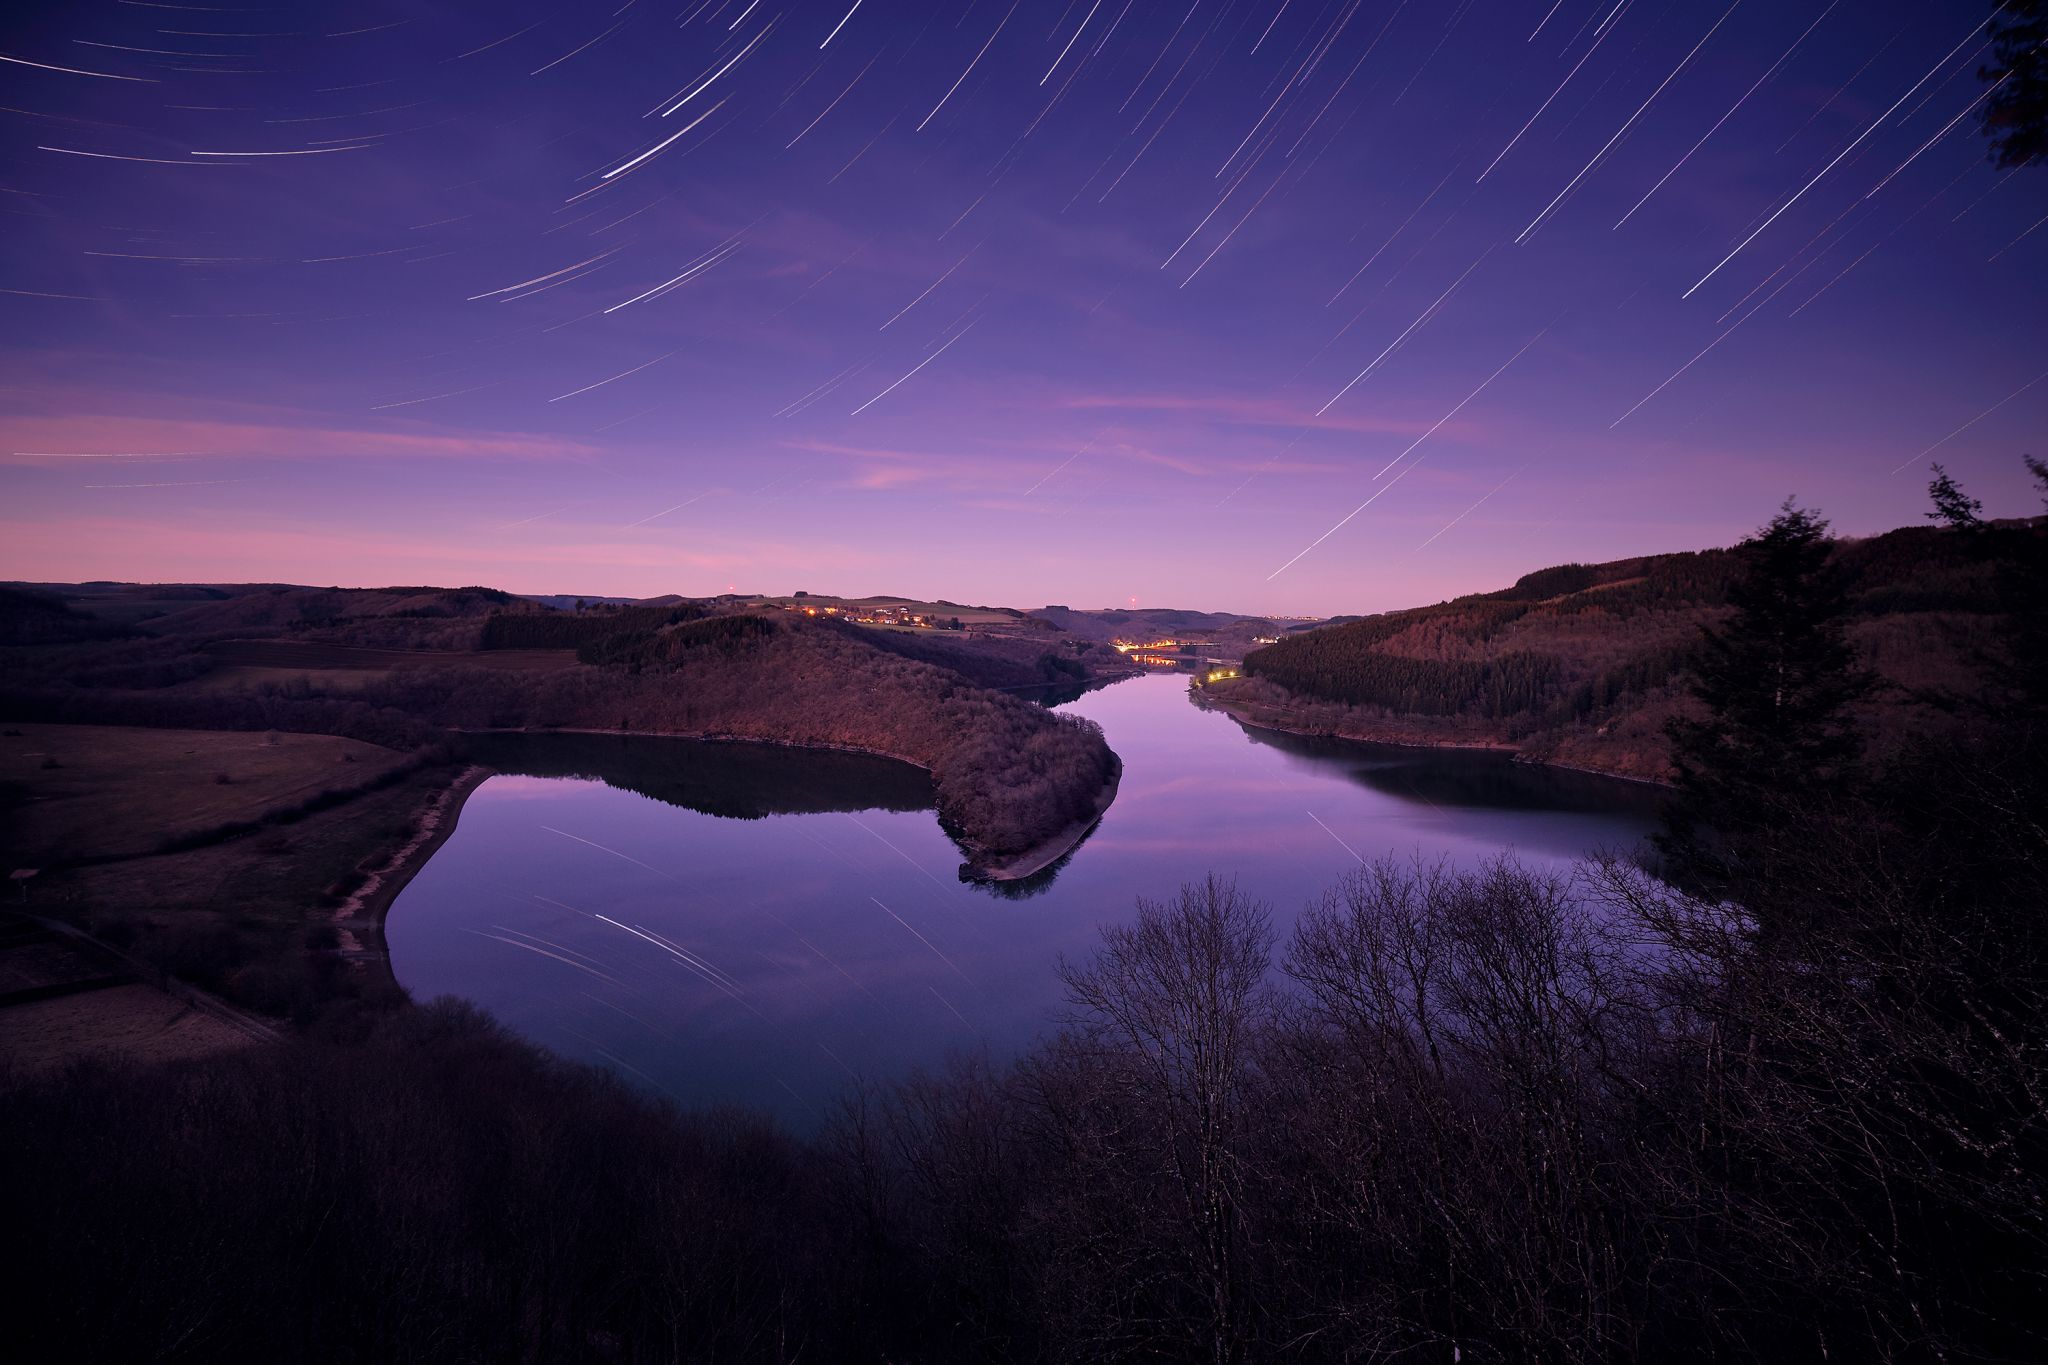 A view on the artificial lake of Esch-sur-Sûre, Luxembourg